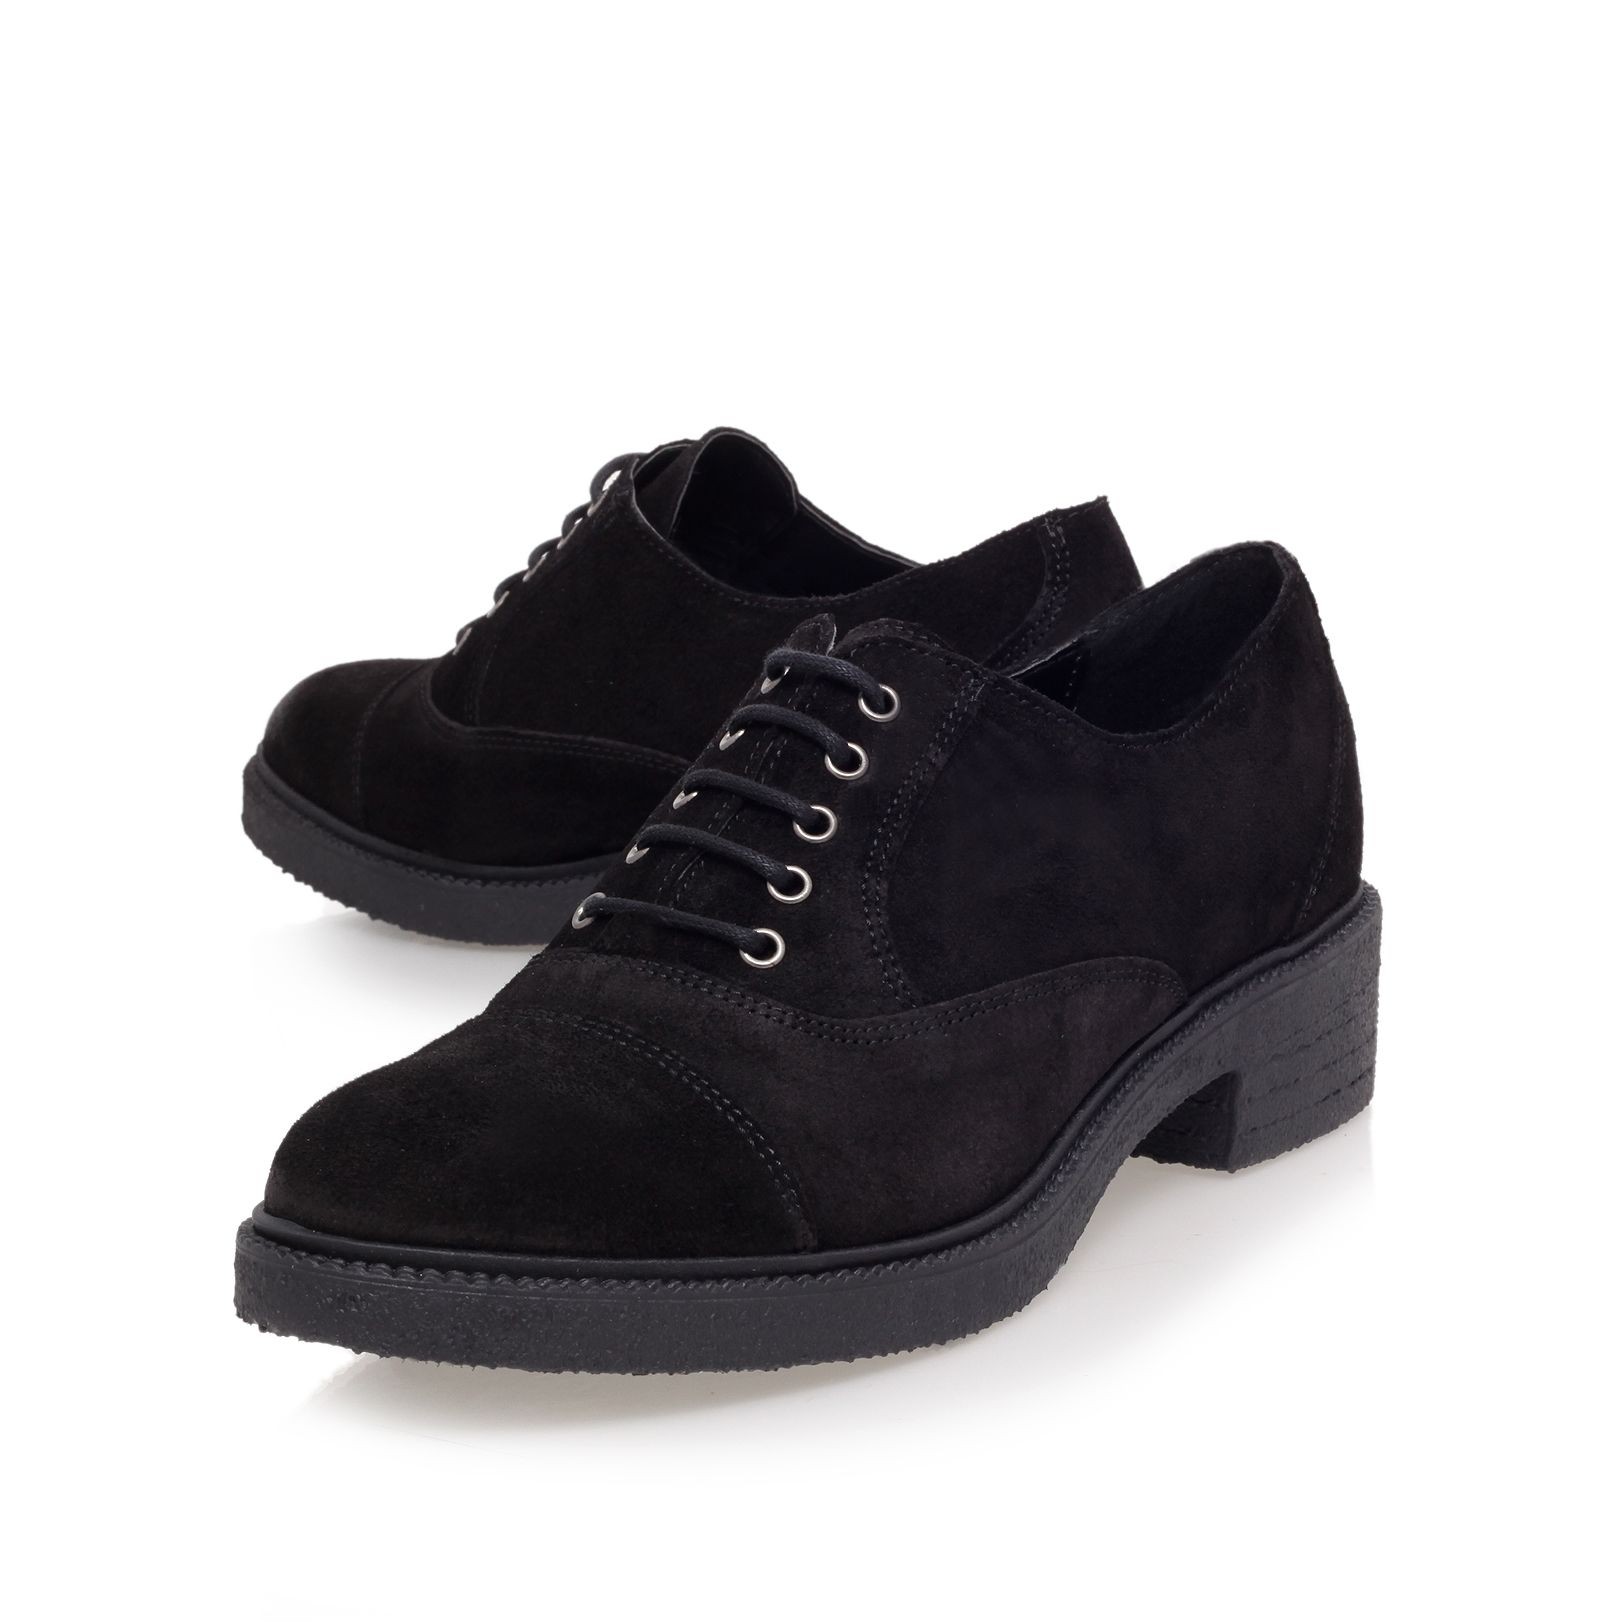 Loopy low heel lace-up shoes